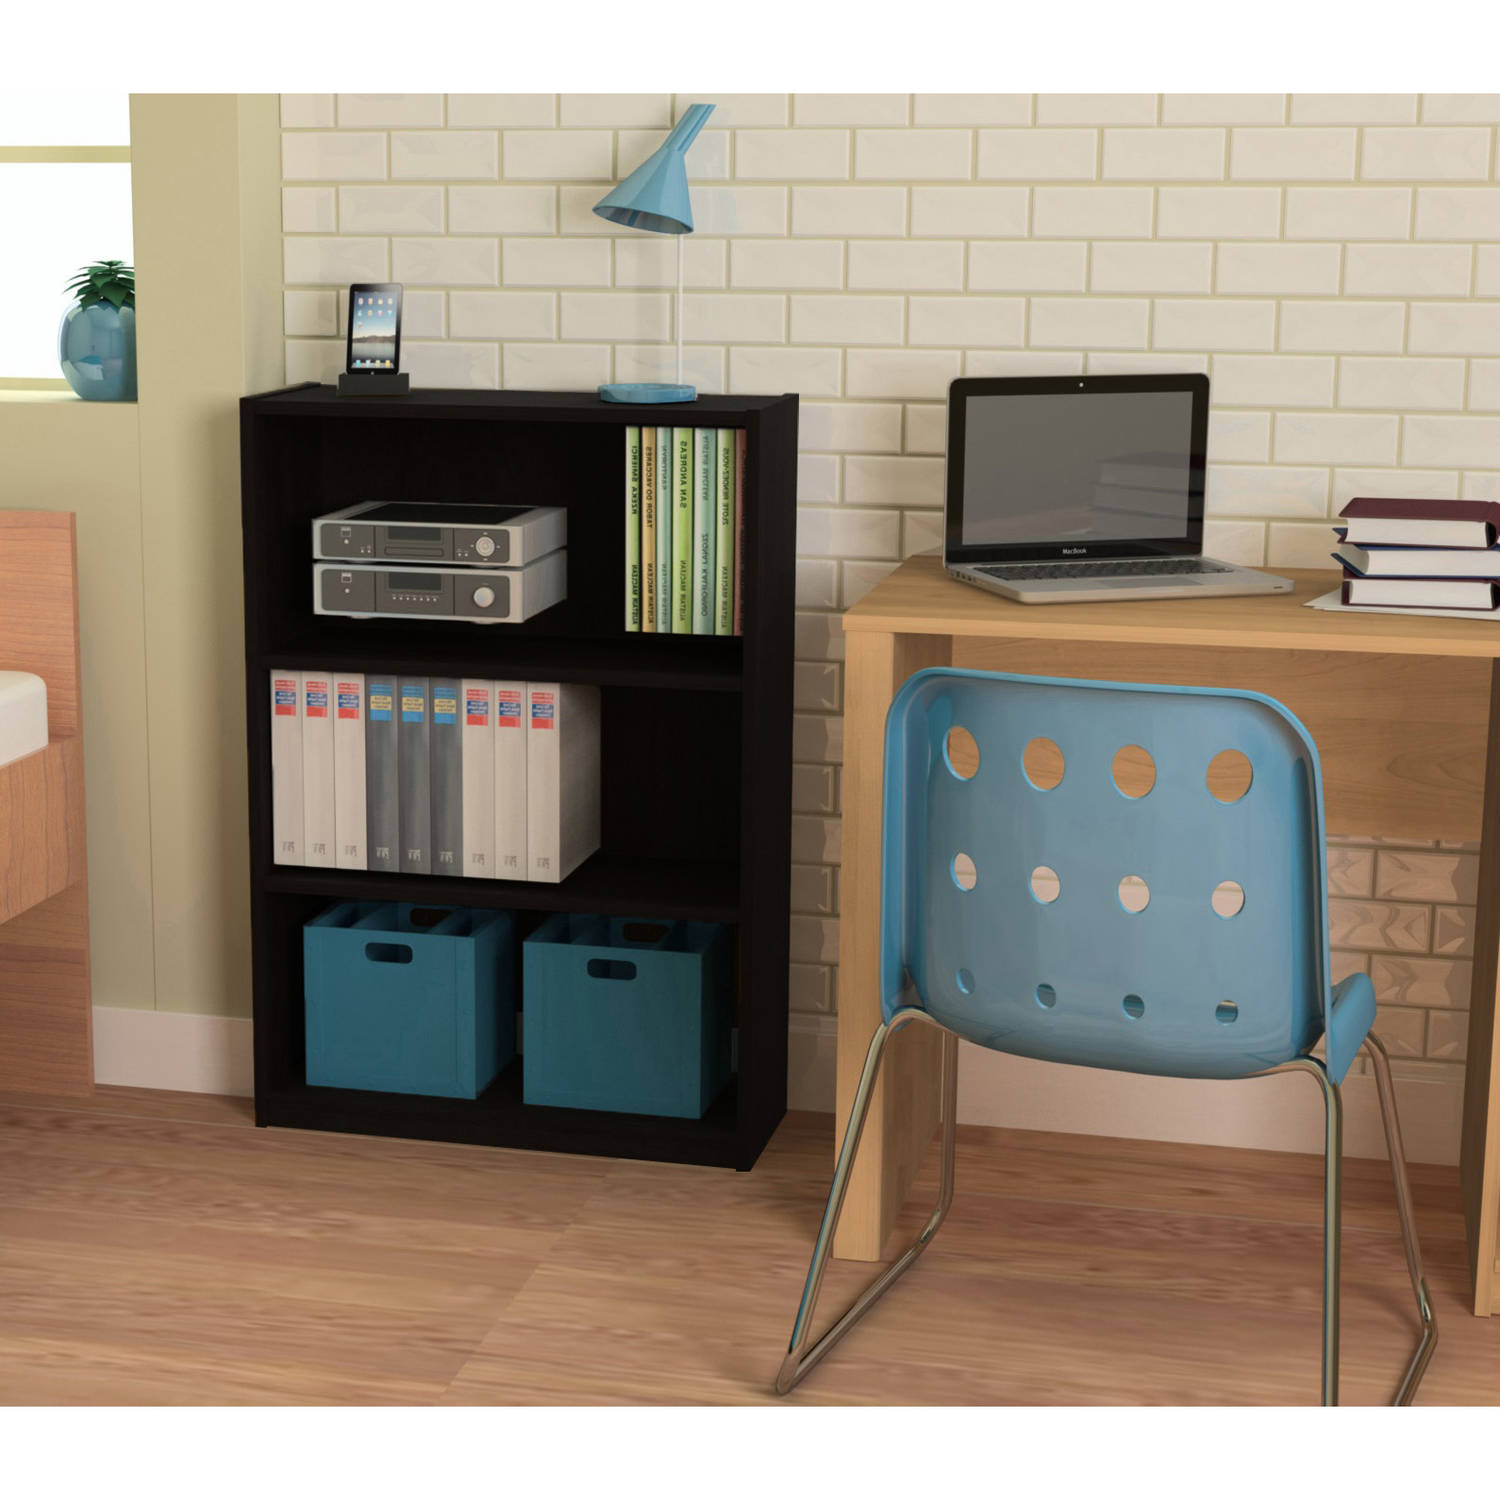 Mainstays Corner Desk Amp 3 Shelf Bookcase Value Bundle Mix